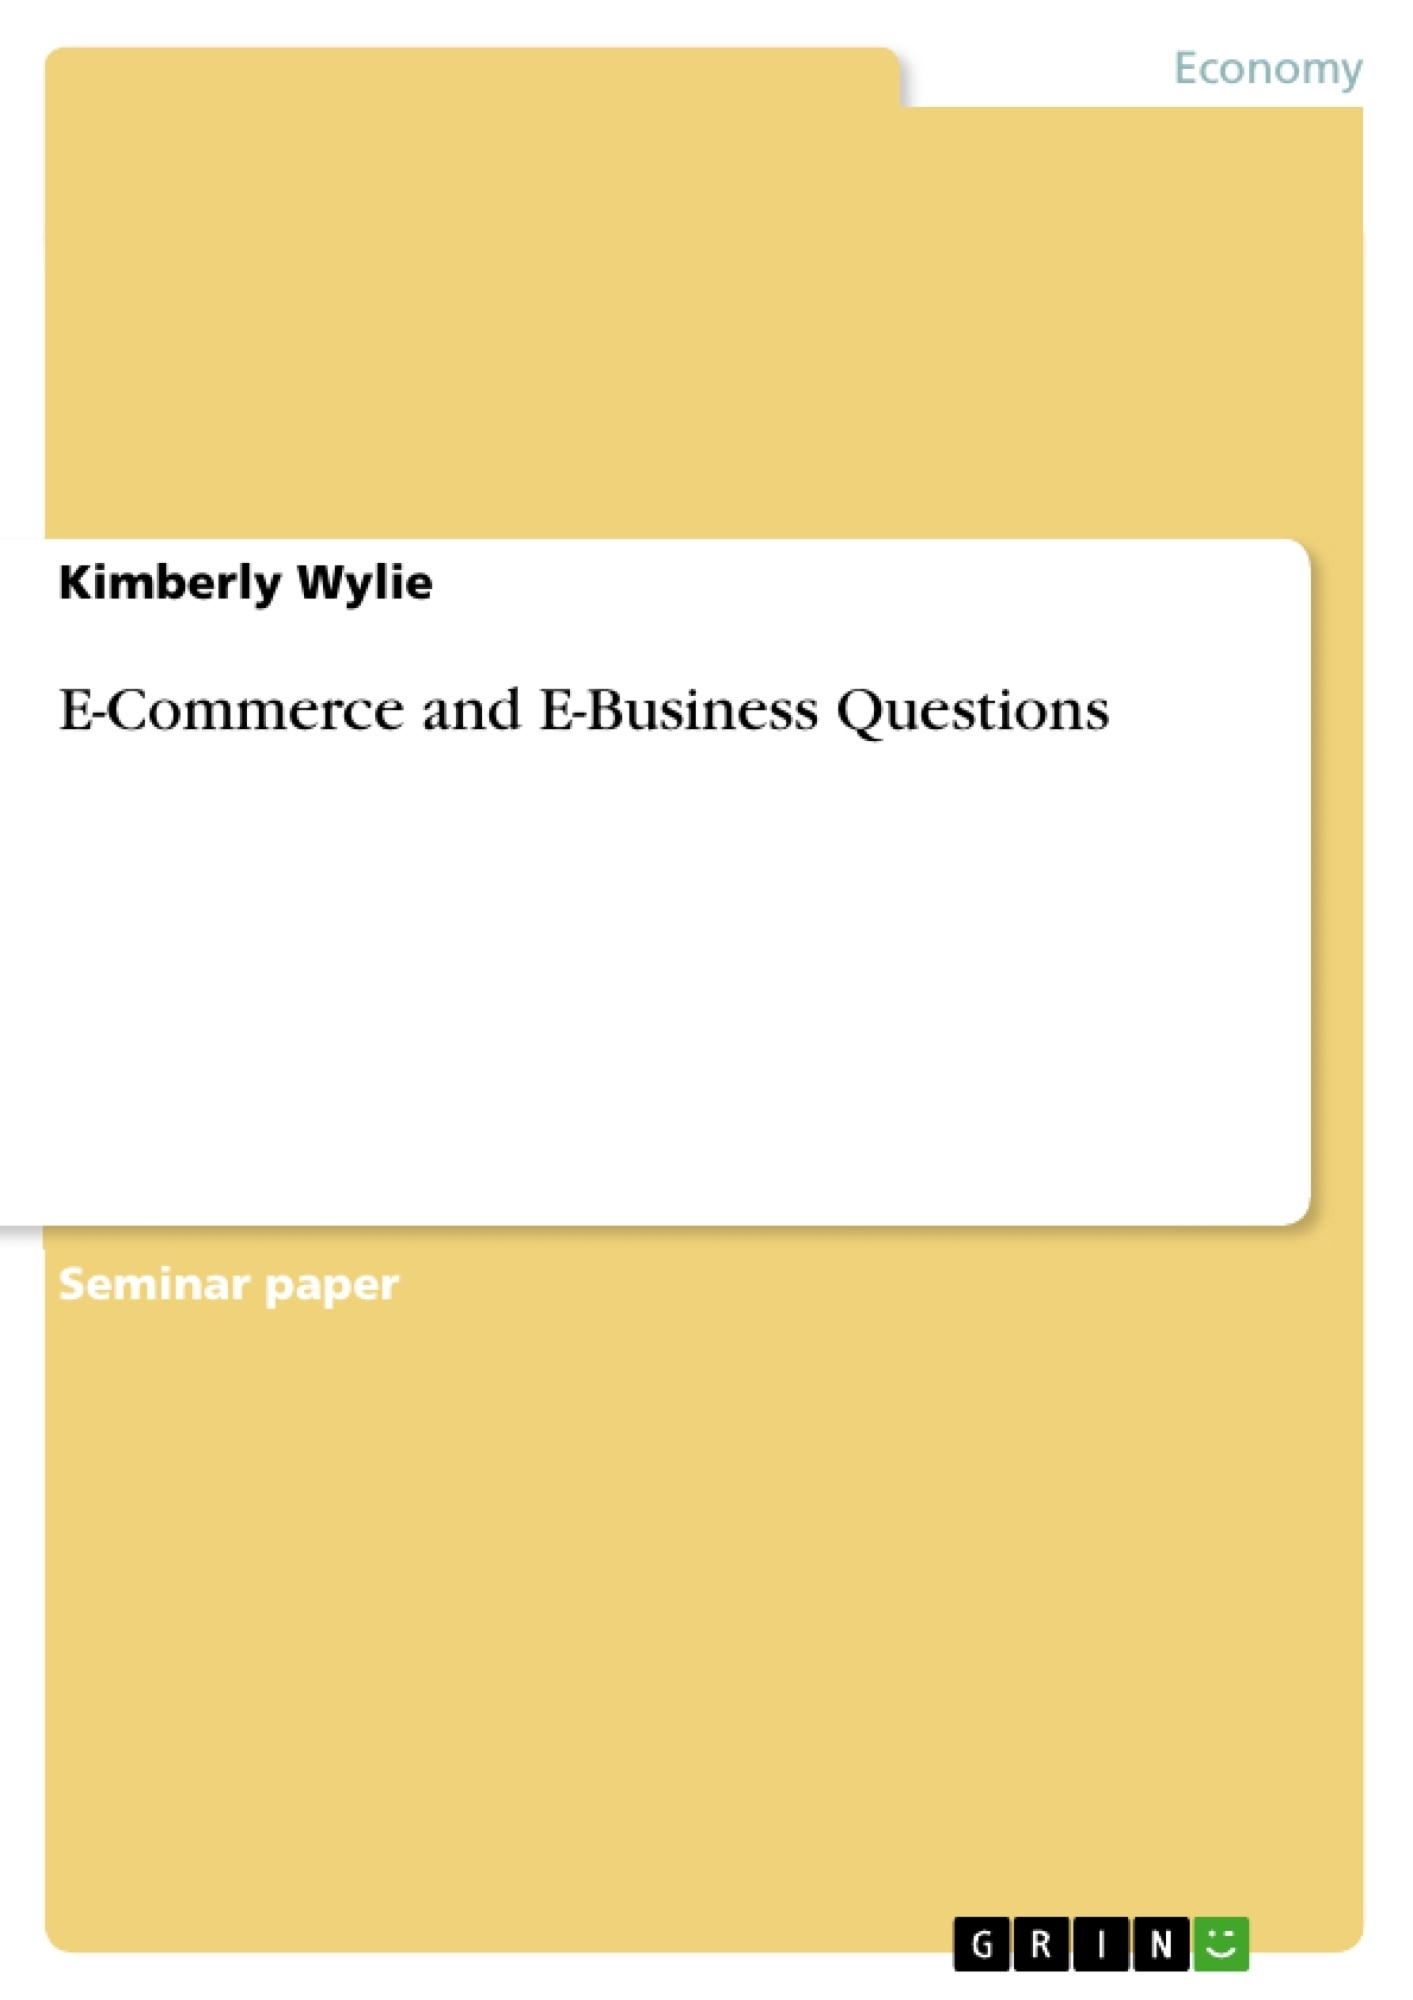 thesis on e-commerce Thesis chapter 1 - free download as word doc (doc / docx), pdf file (pdf), text file (txt) or read online for free.